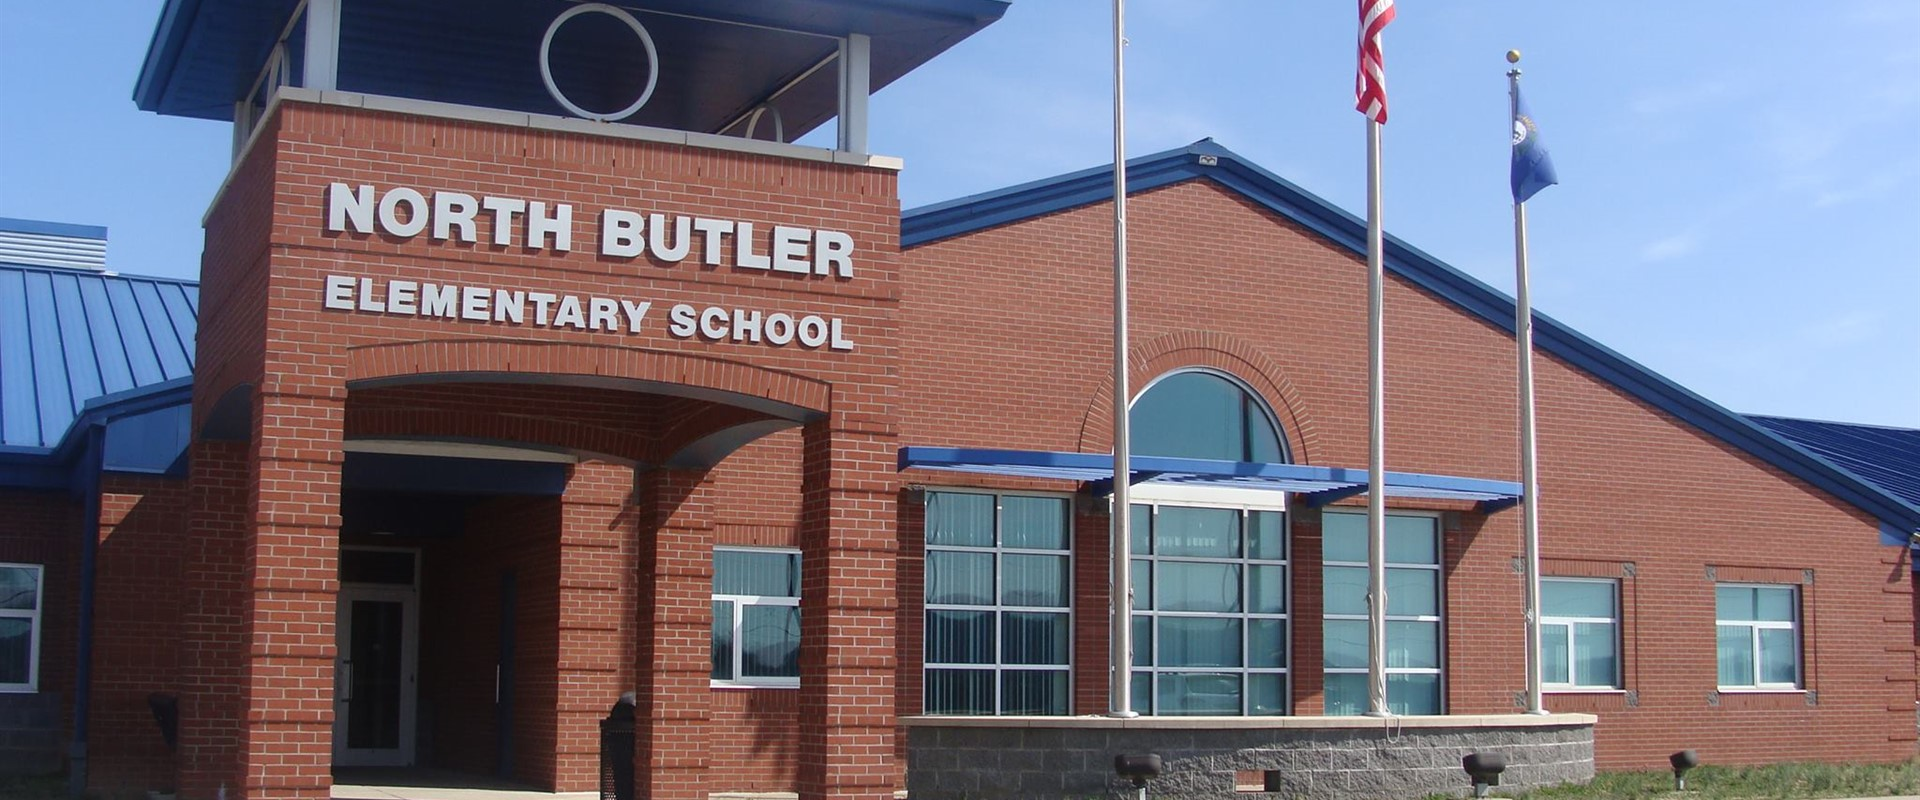 North Butler